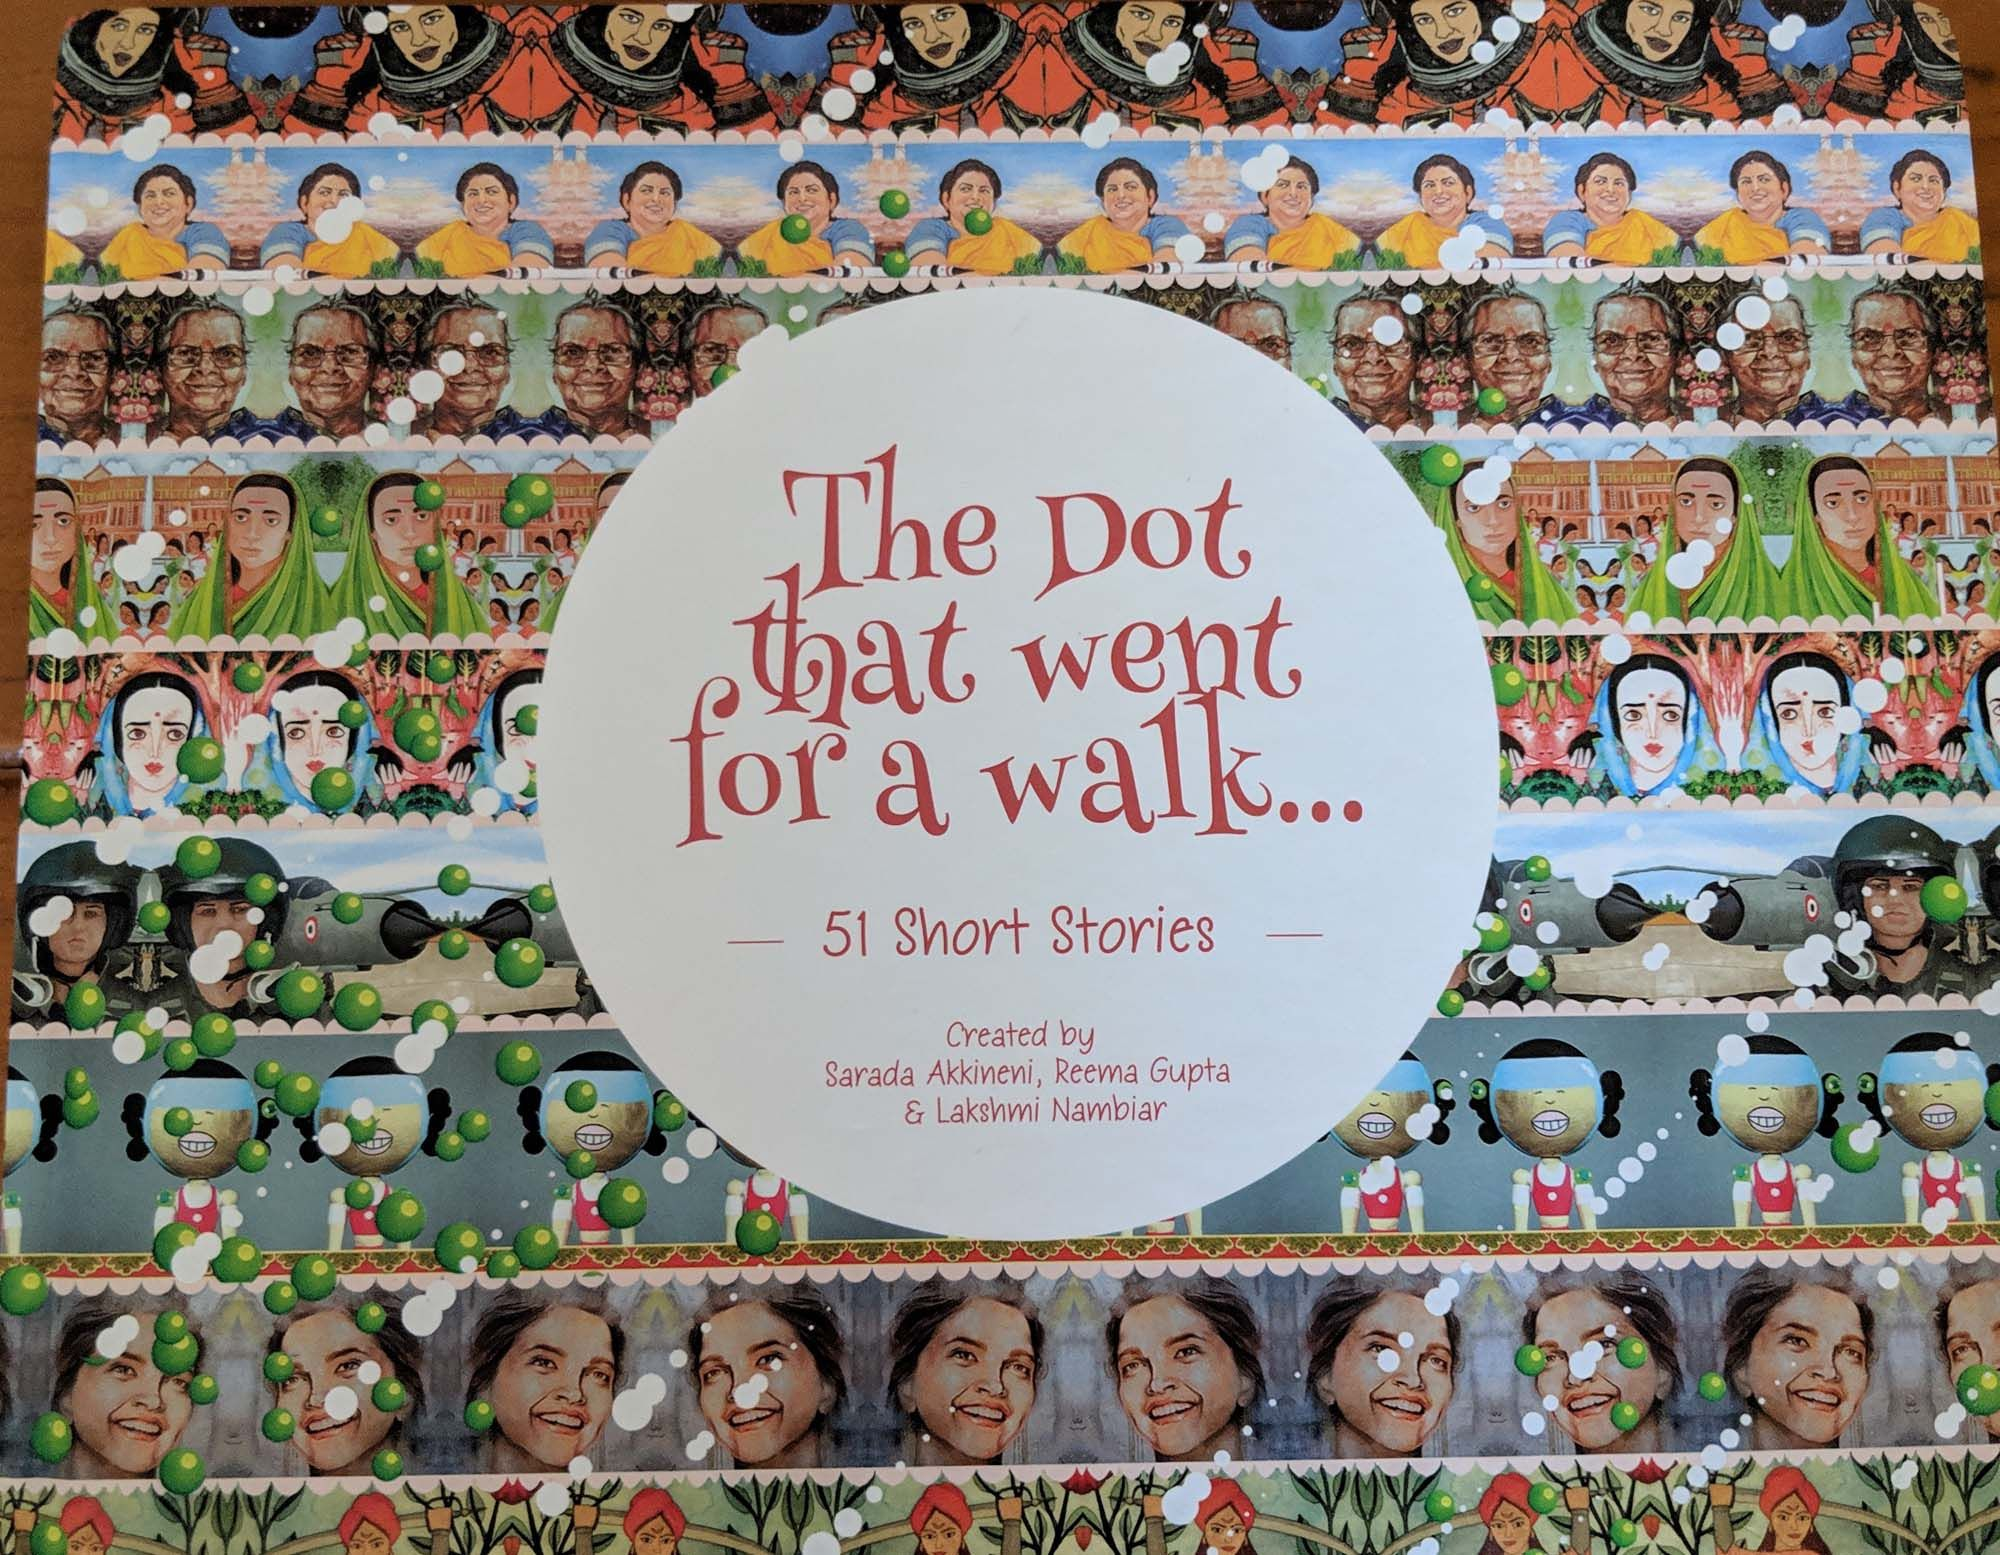 The Book Is Titled The Dot That Went For A Walk